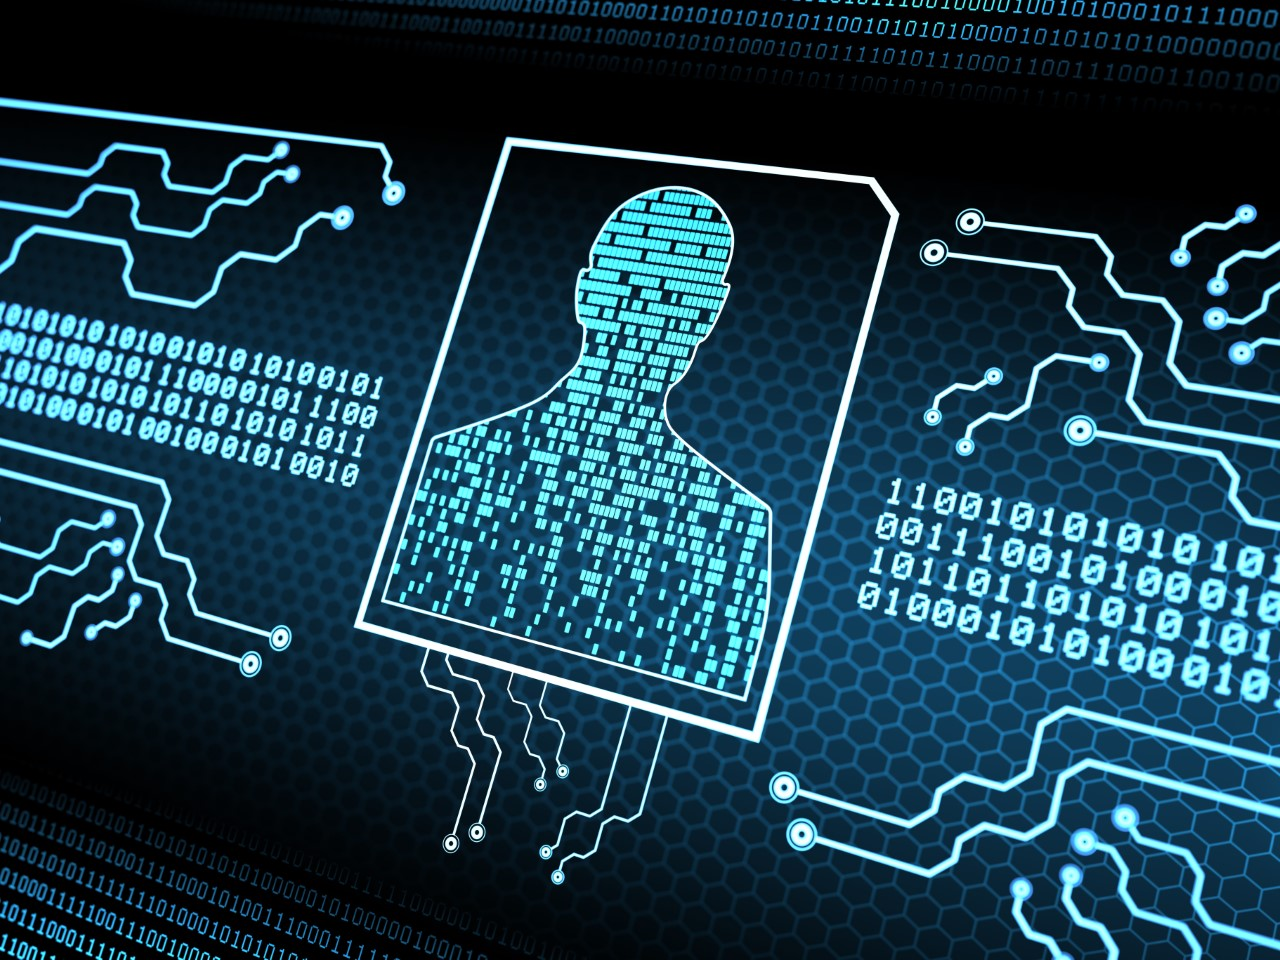 The Latest Salvo in the Fight to Protect Digital Identity